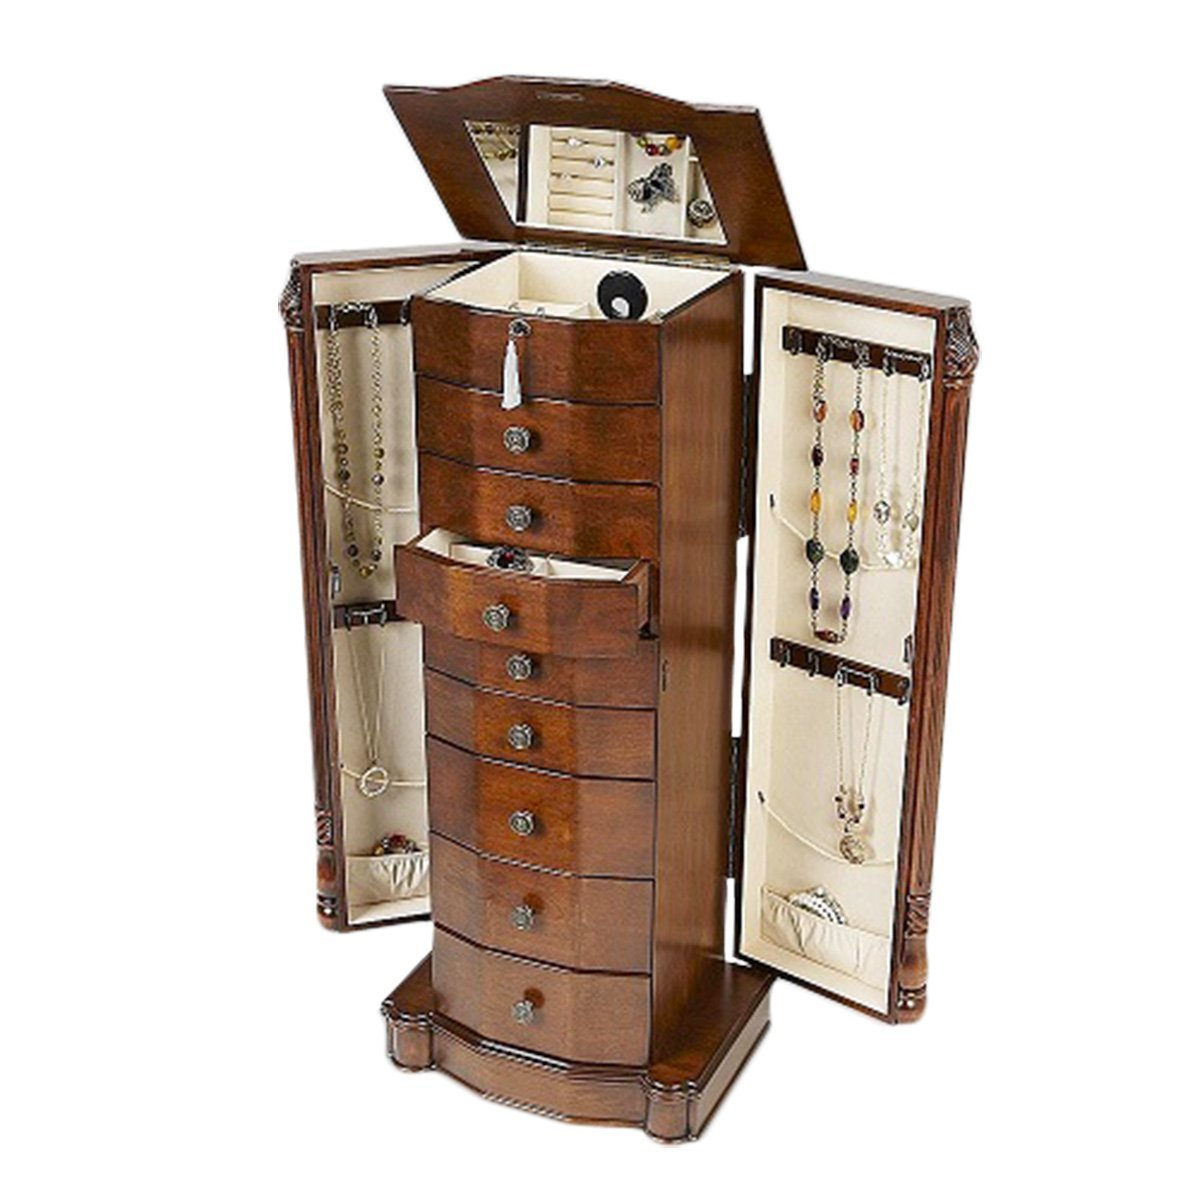 Luxury Wooden Standing Mirror Jewelry Armoire In Chestnut Brown With Drawers For Home Decor Ideas